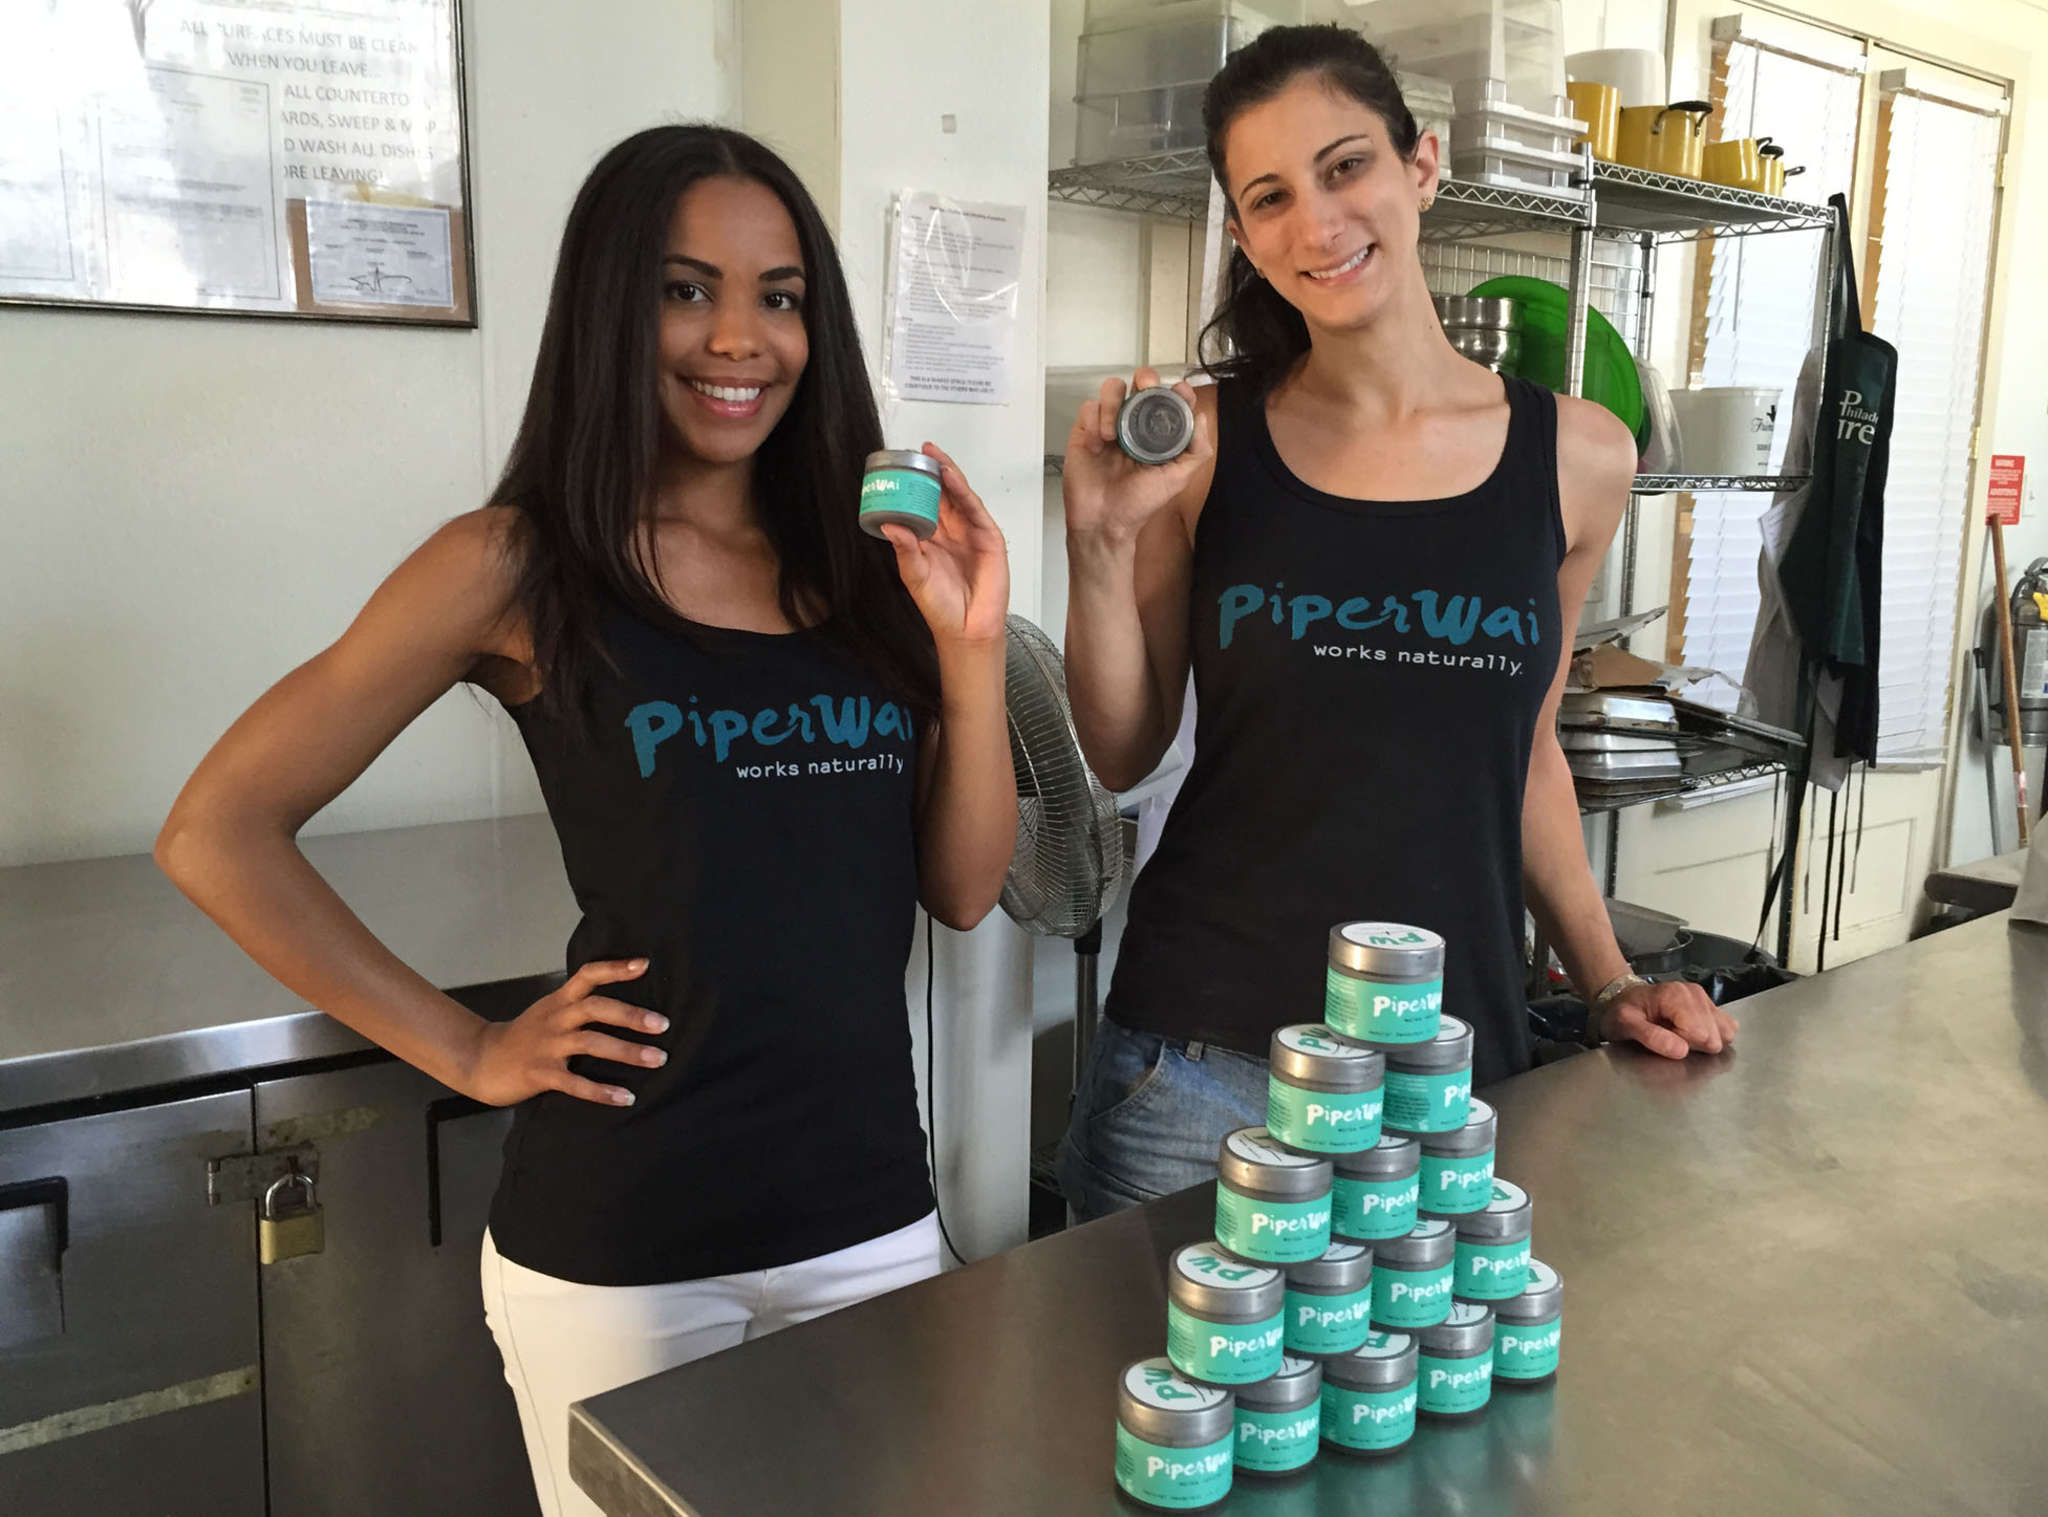 Sarah Ribner (left) and Jess Edelstein have made some adjustments to their operations as they market natural deodorant, such as not charging customers until their orders have been shipped.